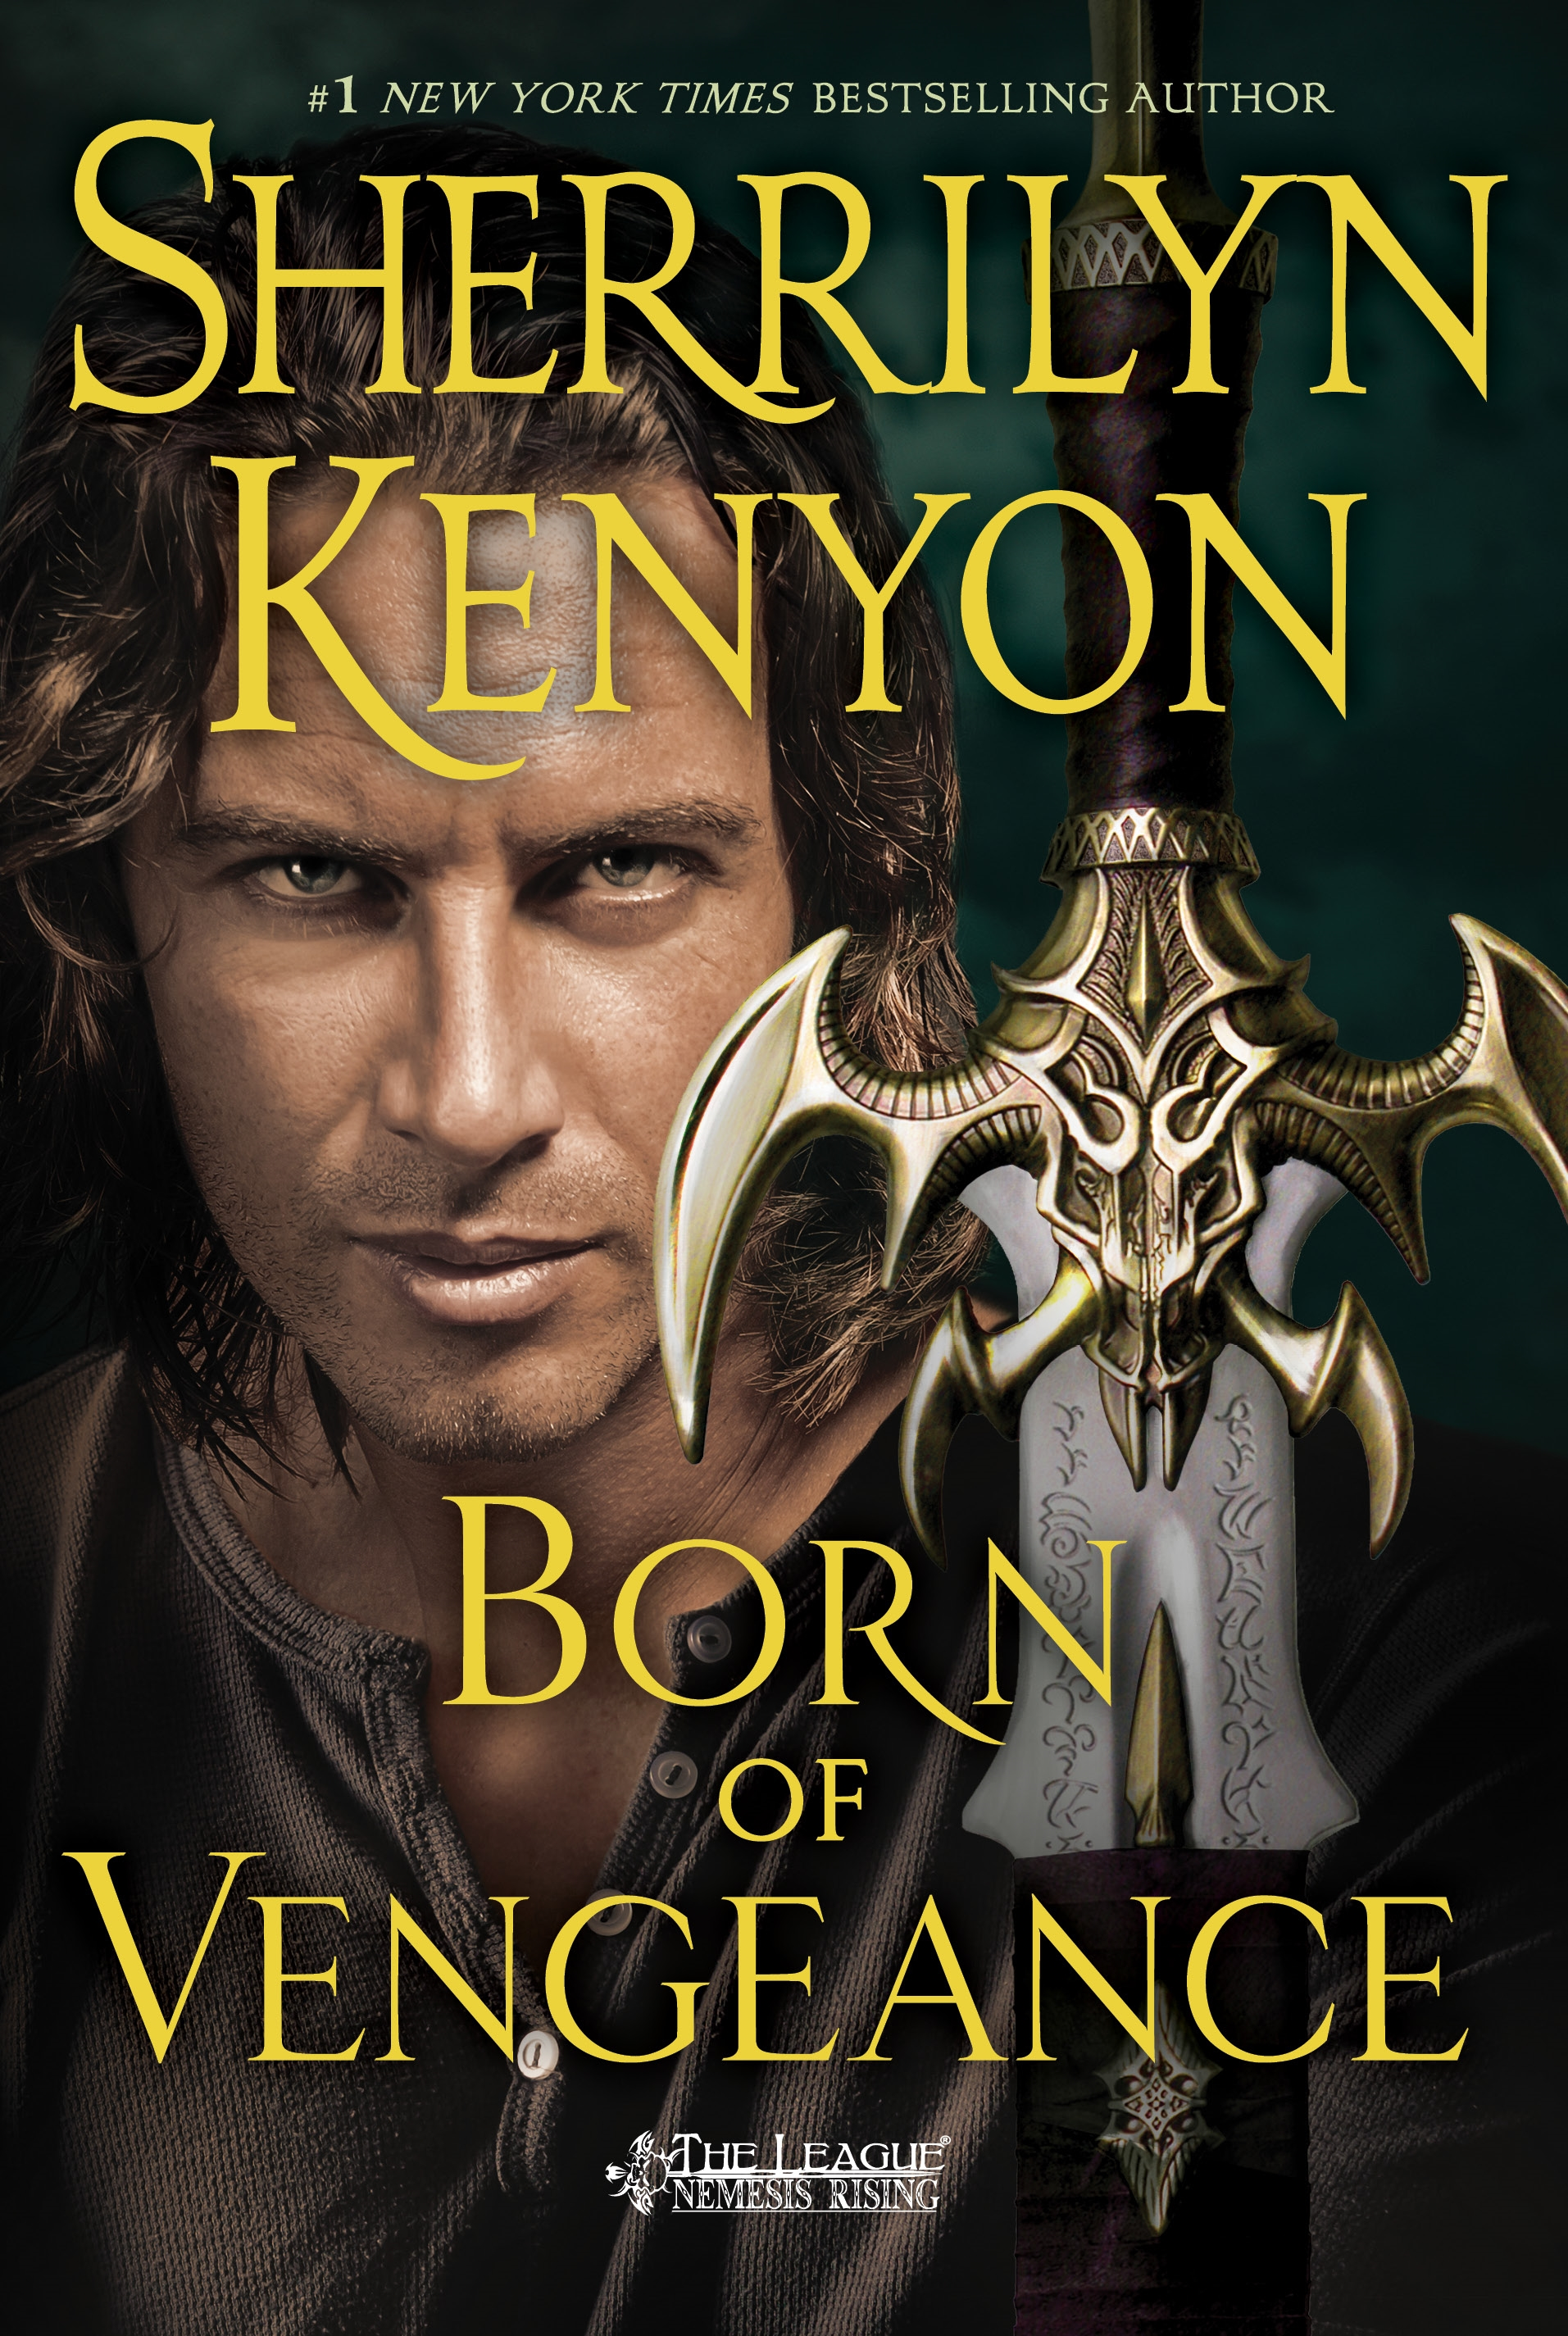 Born of vengeance : the league nemesis rising